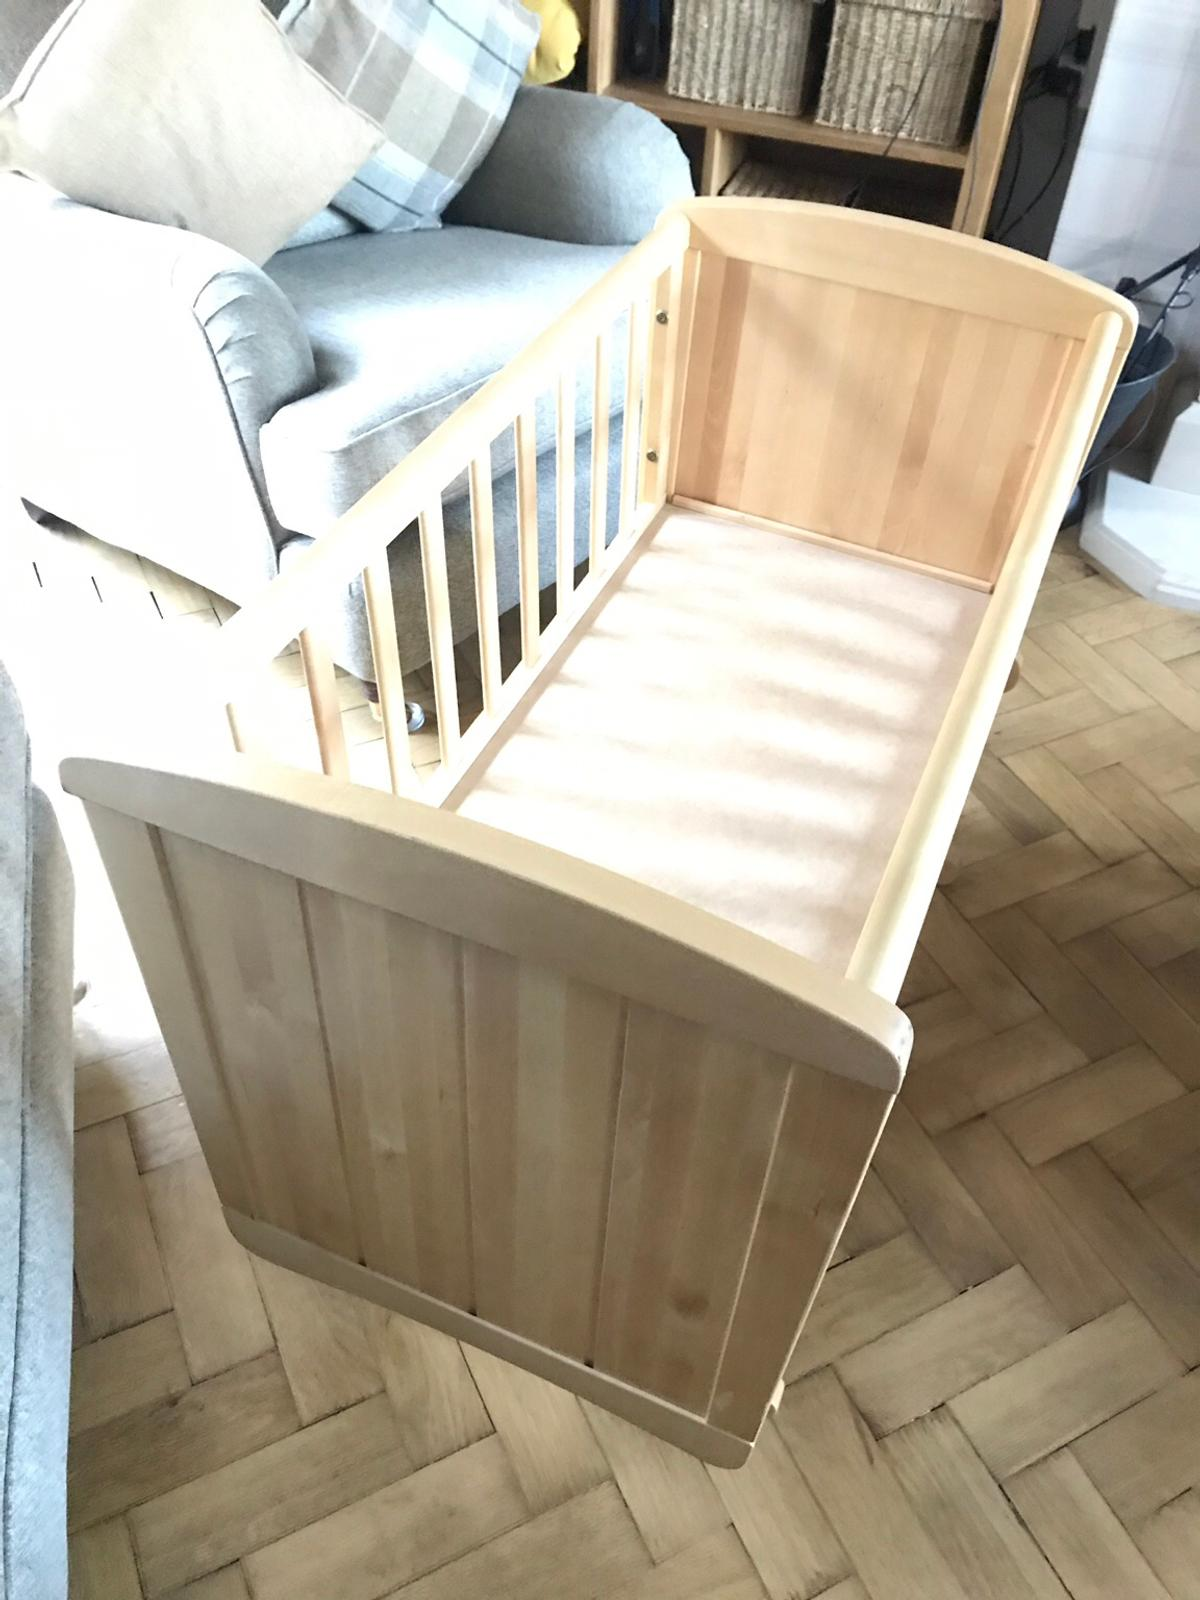 Excellent condition. Good quality solid crib. Gliding rocking action. Mattress included.